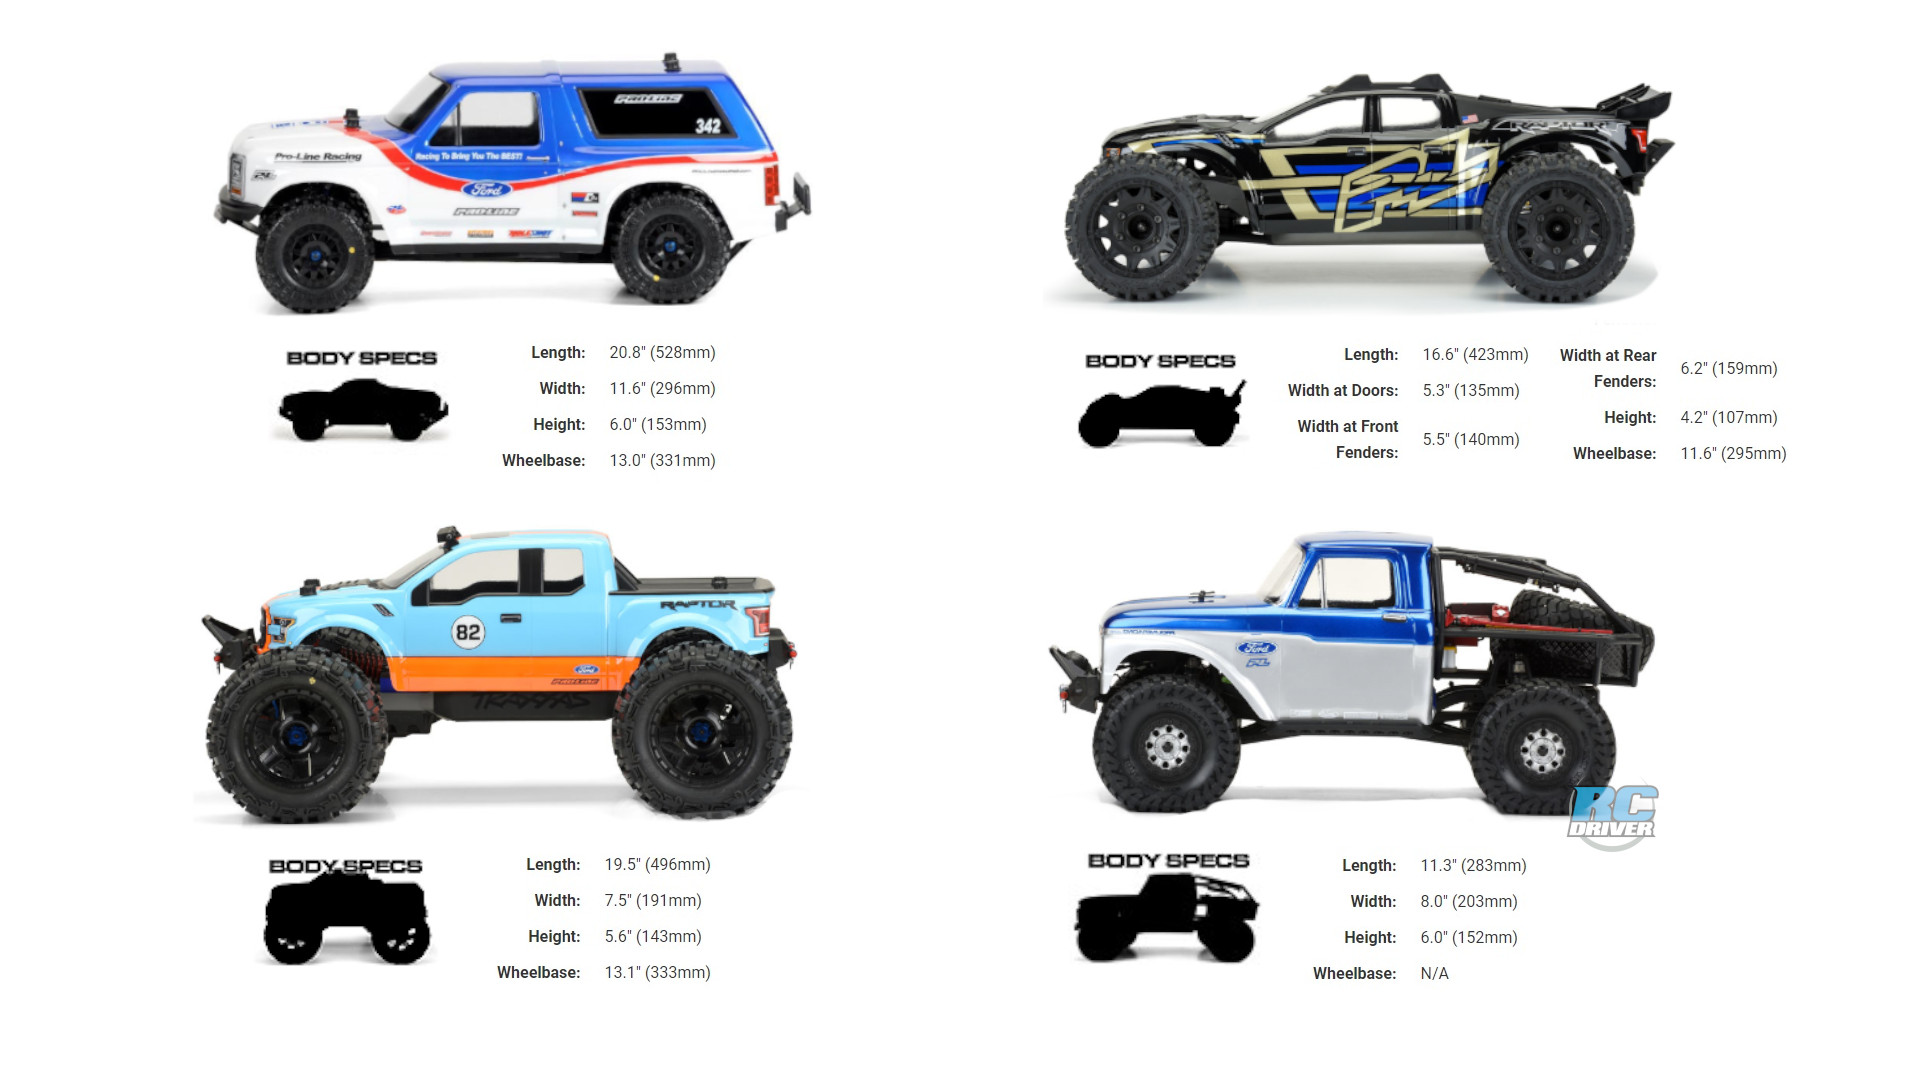 How-to select a Pro-Line body for your off-road vehicle